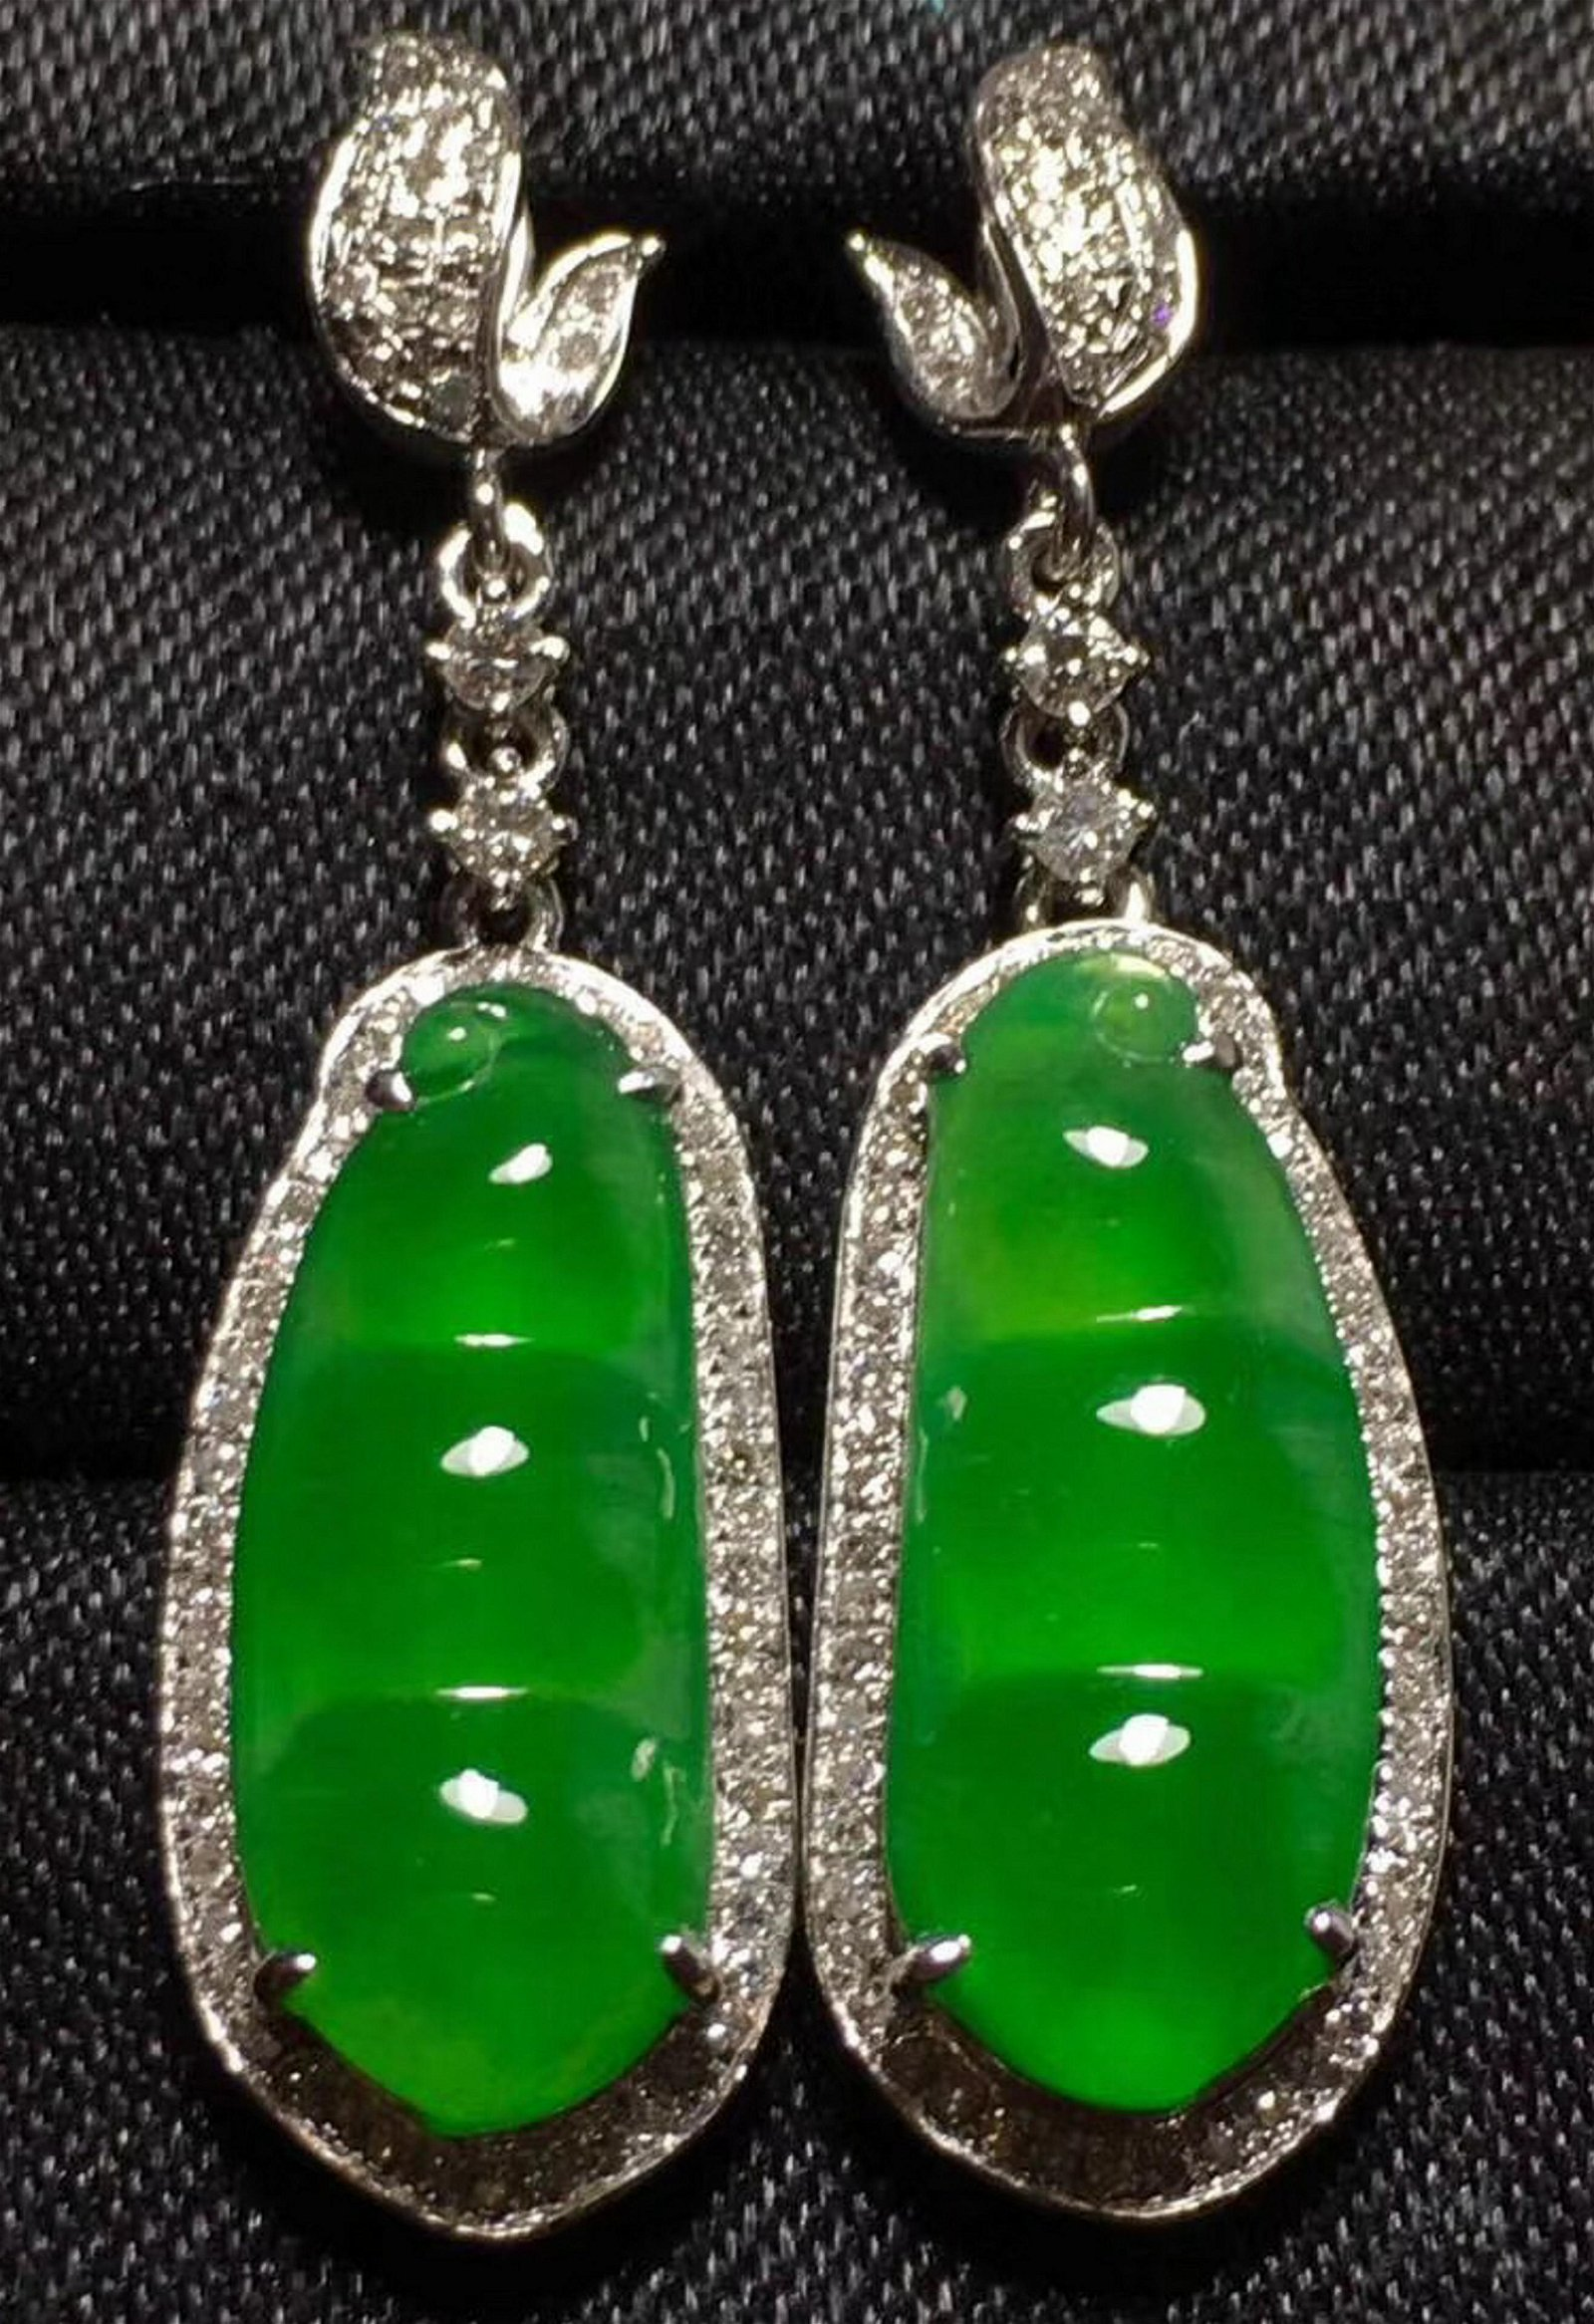 A PAIR OF GREEN JADEITE PEAPOD SHAPED EARINGS